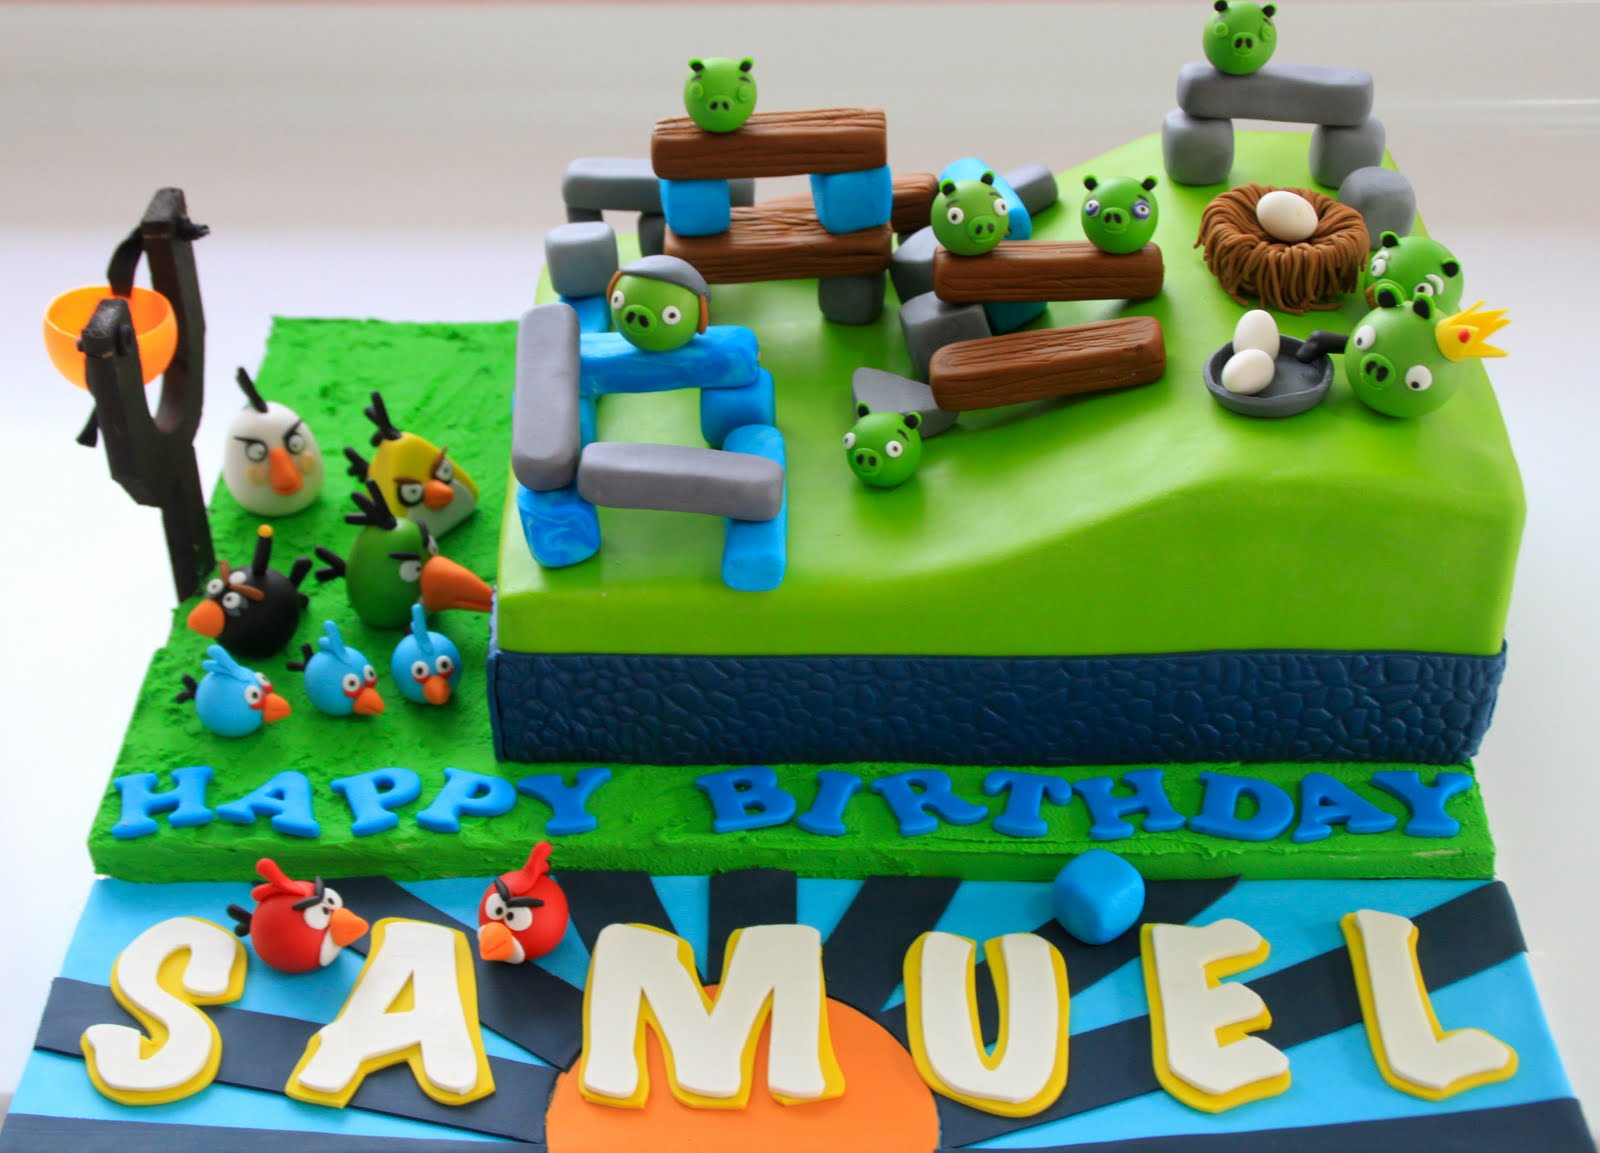 Images Of Angry Birds Cake : Celebrate with Cake!: Playable Angry Birds Cake